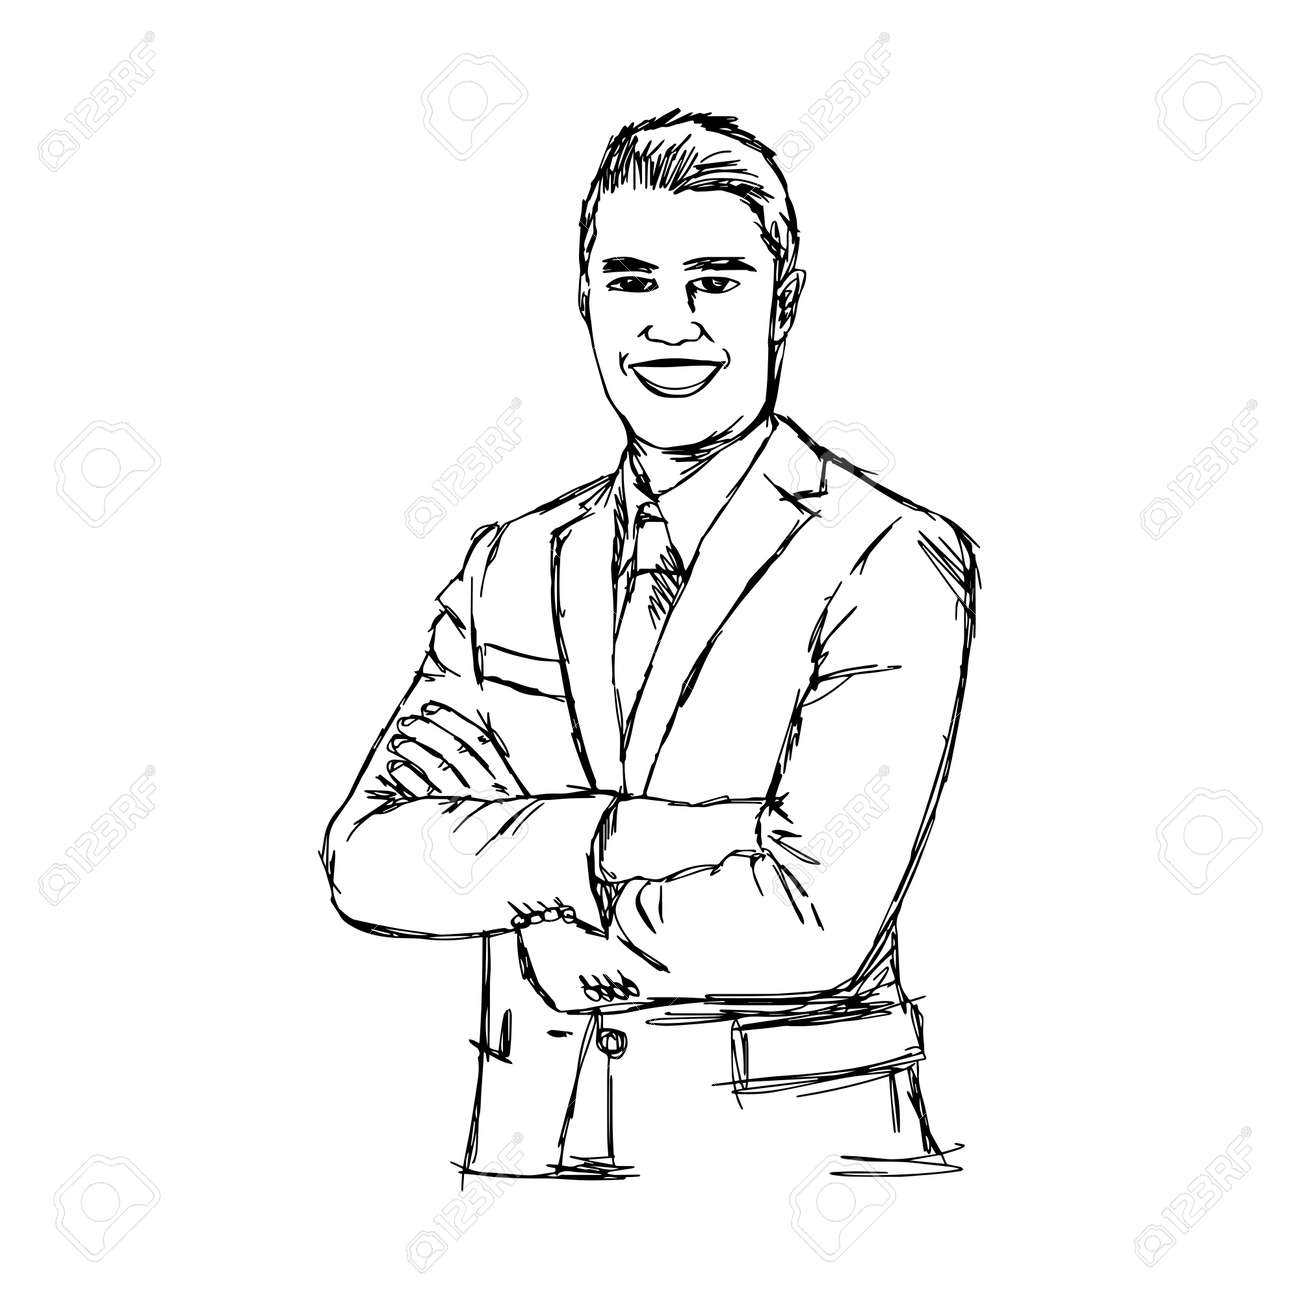 illustration doodle hand drawn of sketch smiling businessman with crossed arms. Body language. Nonverbal communication posture - 53084162